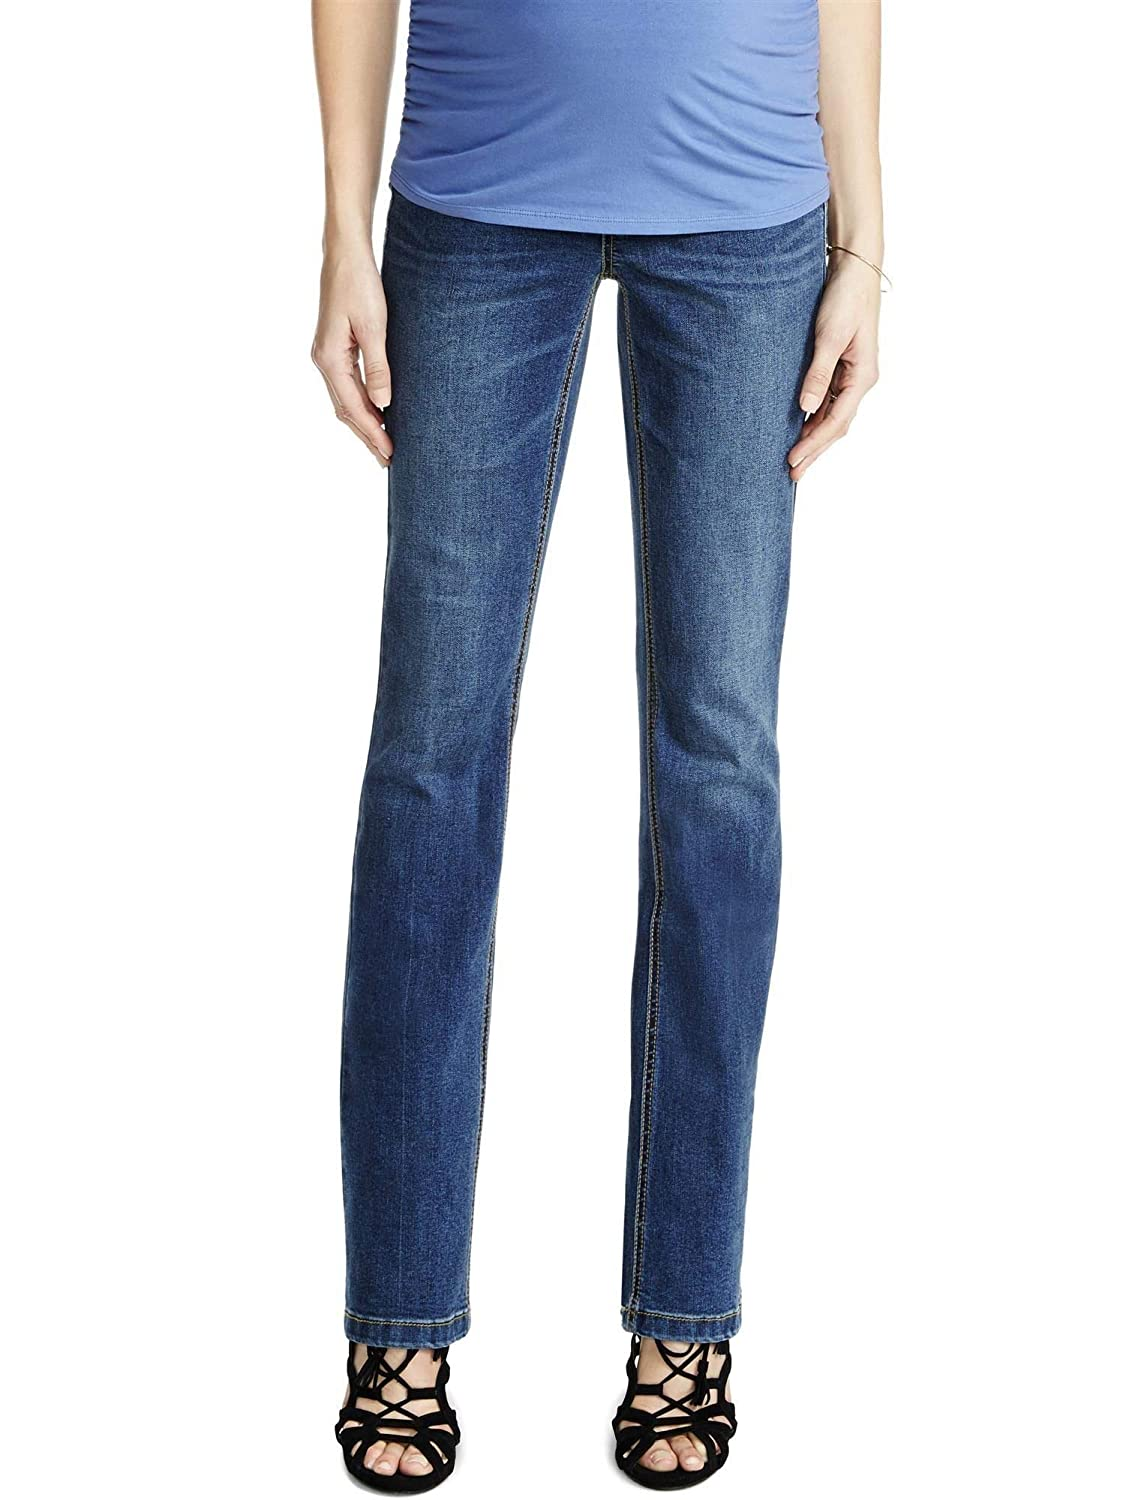 59c3c9fdb06d3 Jessica Simpson Secret Fit Belly Skinny Boot Maternity Jeans at Amazon  Women's Clothing store: